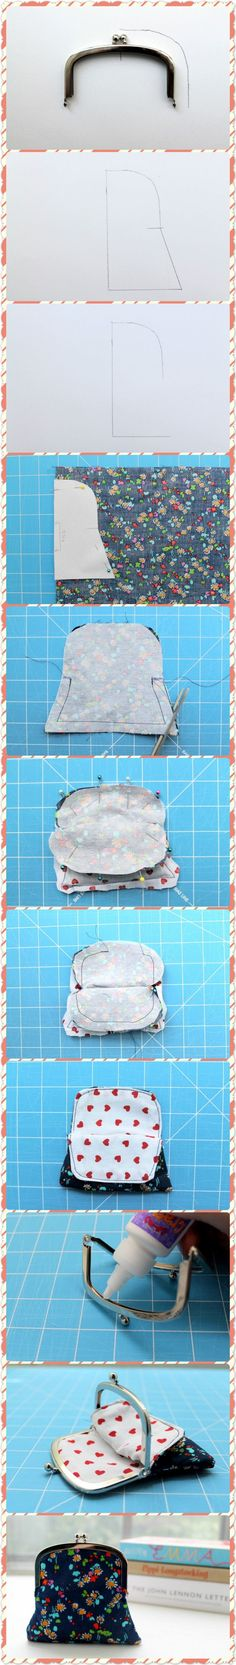 How much fabric for a coin purse Sewing Hacks, Sewing Tutorials, Sewing Crafts, Sewing Projects, Purse Patterns, Sewing Patterns, Diy Coin Purse, Diy Accessoires, Frame Purse